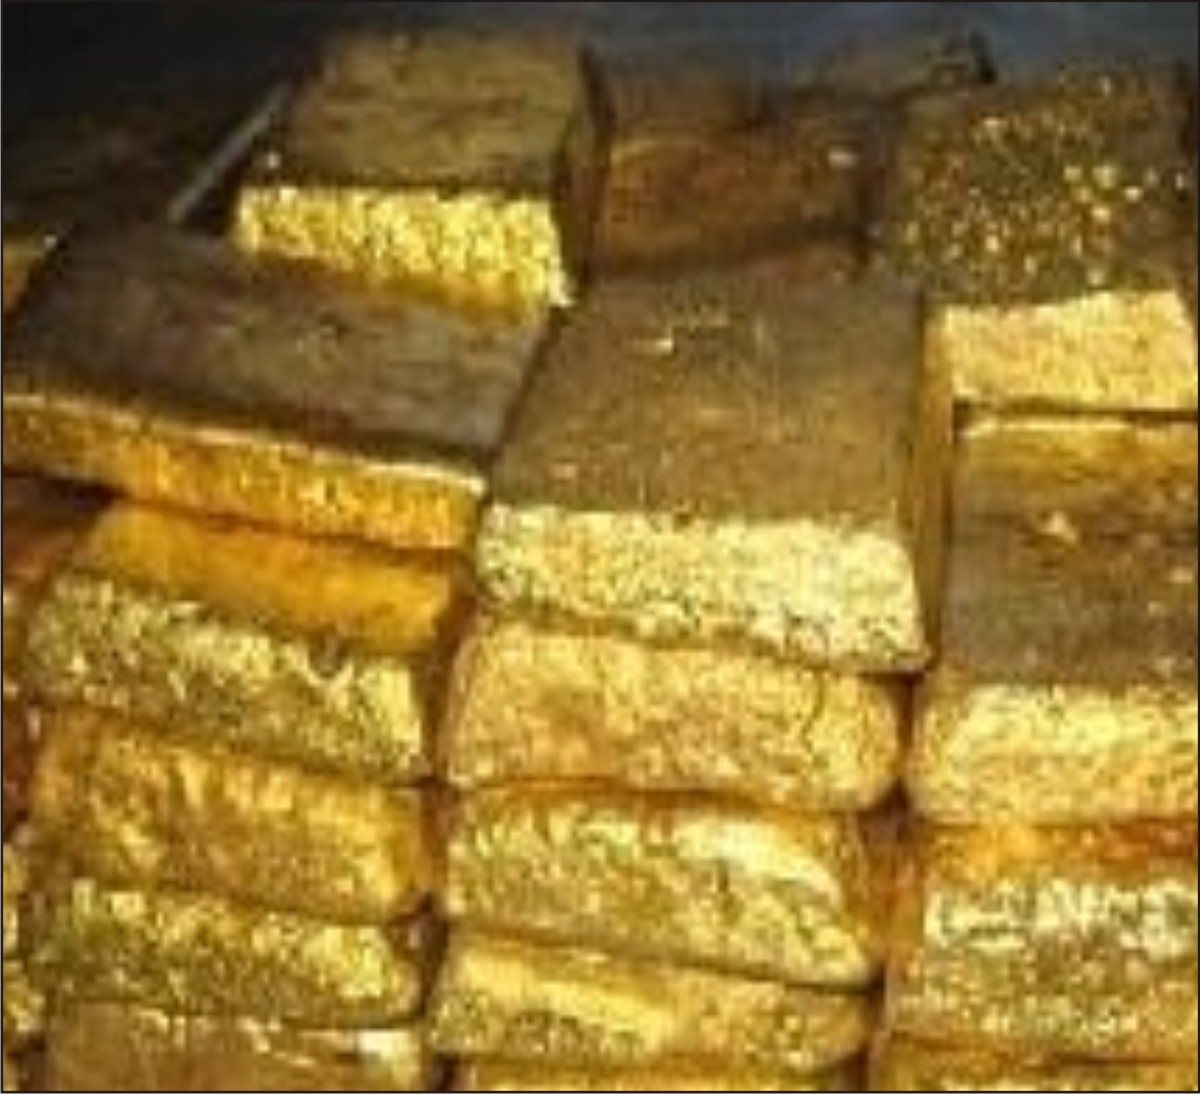 GOLD DORE BARS FOR SALE - #SELL20440